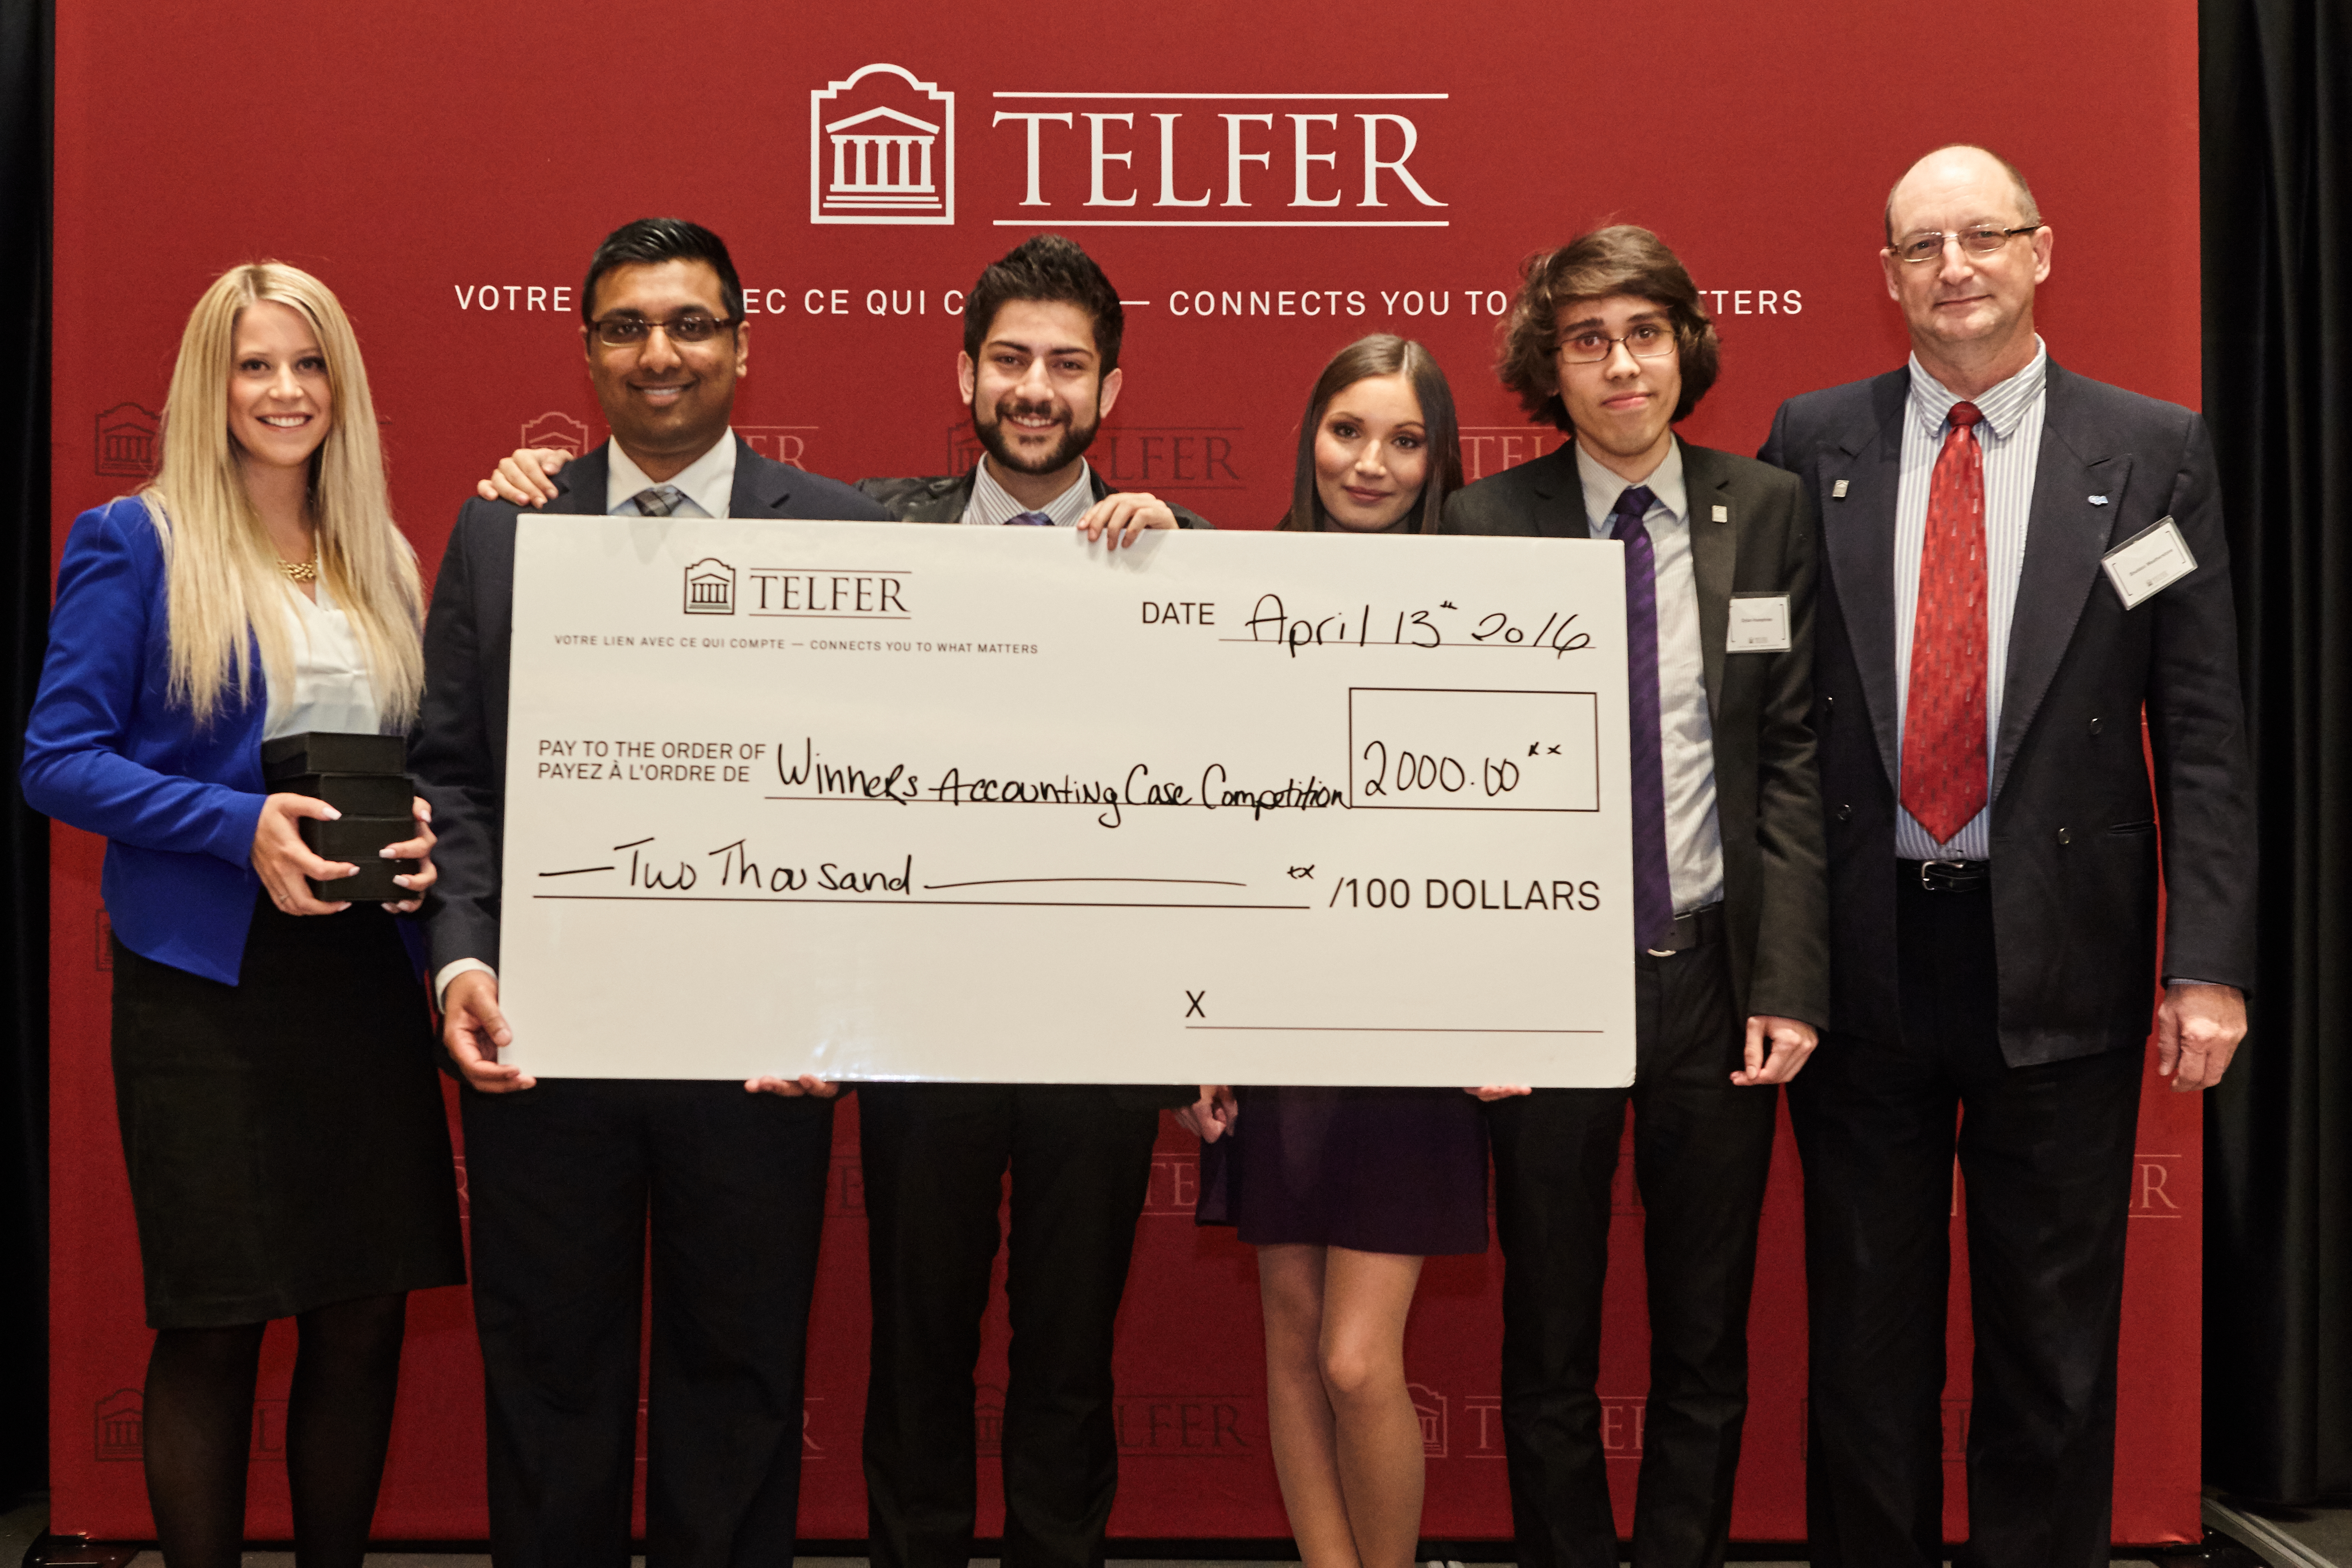 winners of the accounting capstone standing in front of a branded backdrop with their prize cheque.